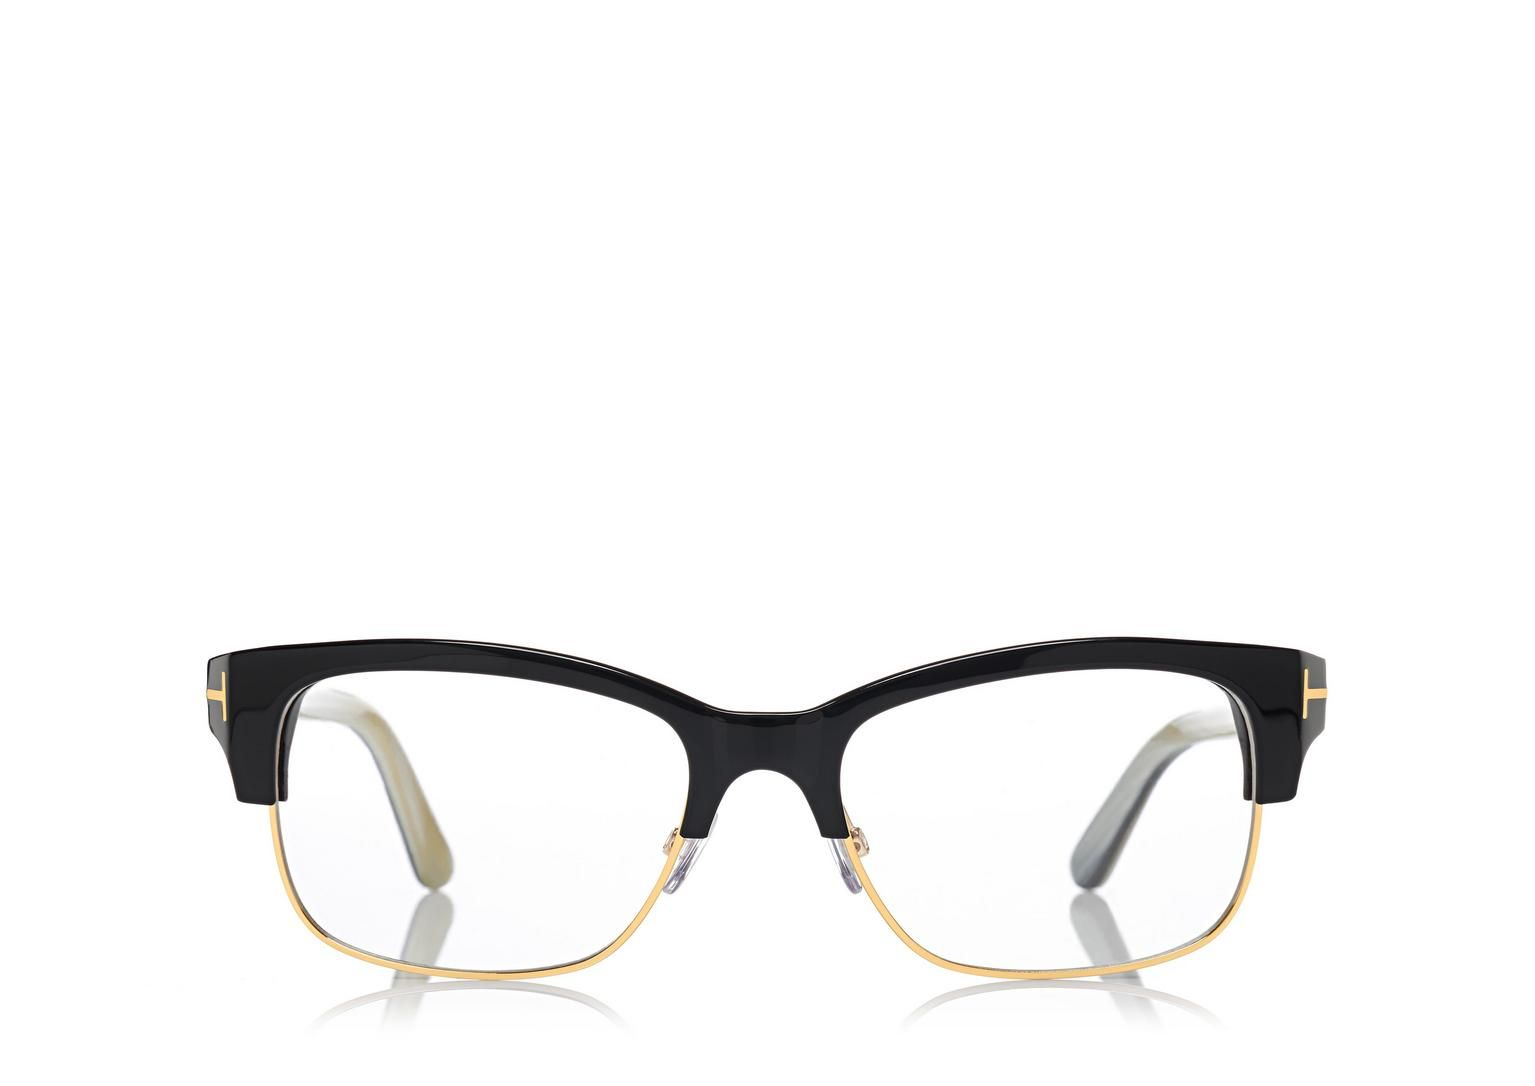 Square Optical Frame | Shop Tom Ford Online Store | Dress for rts ...